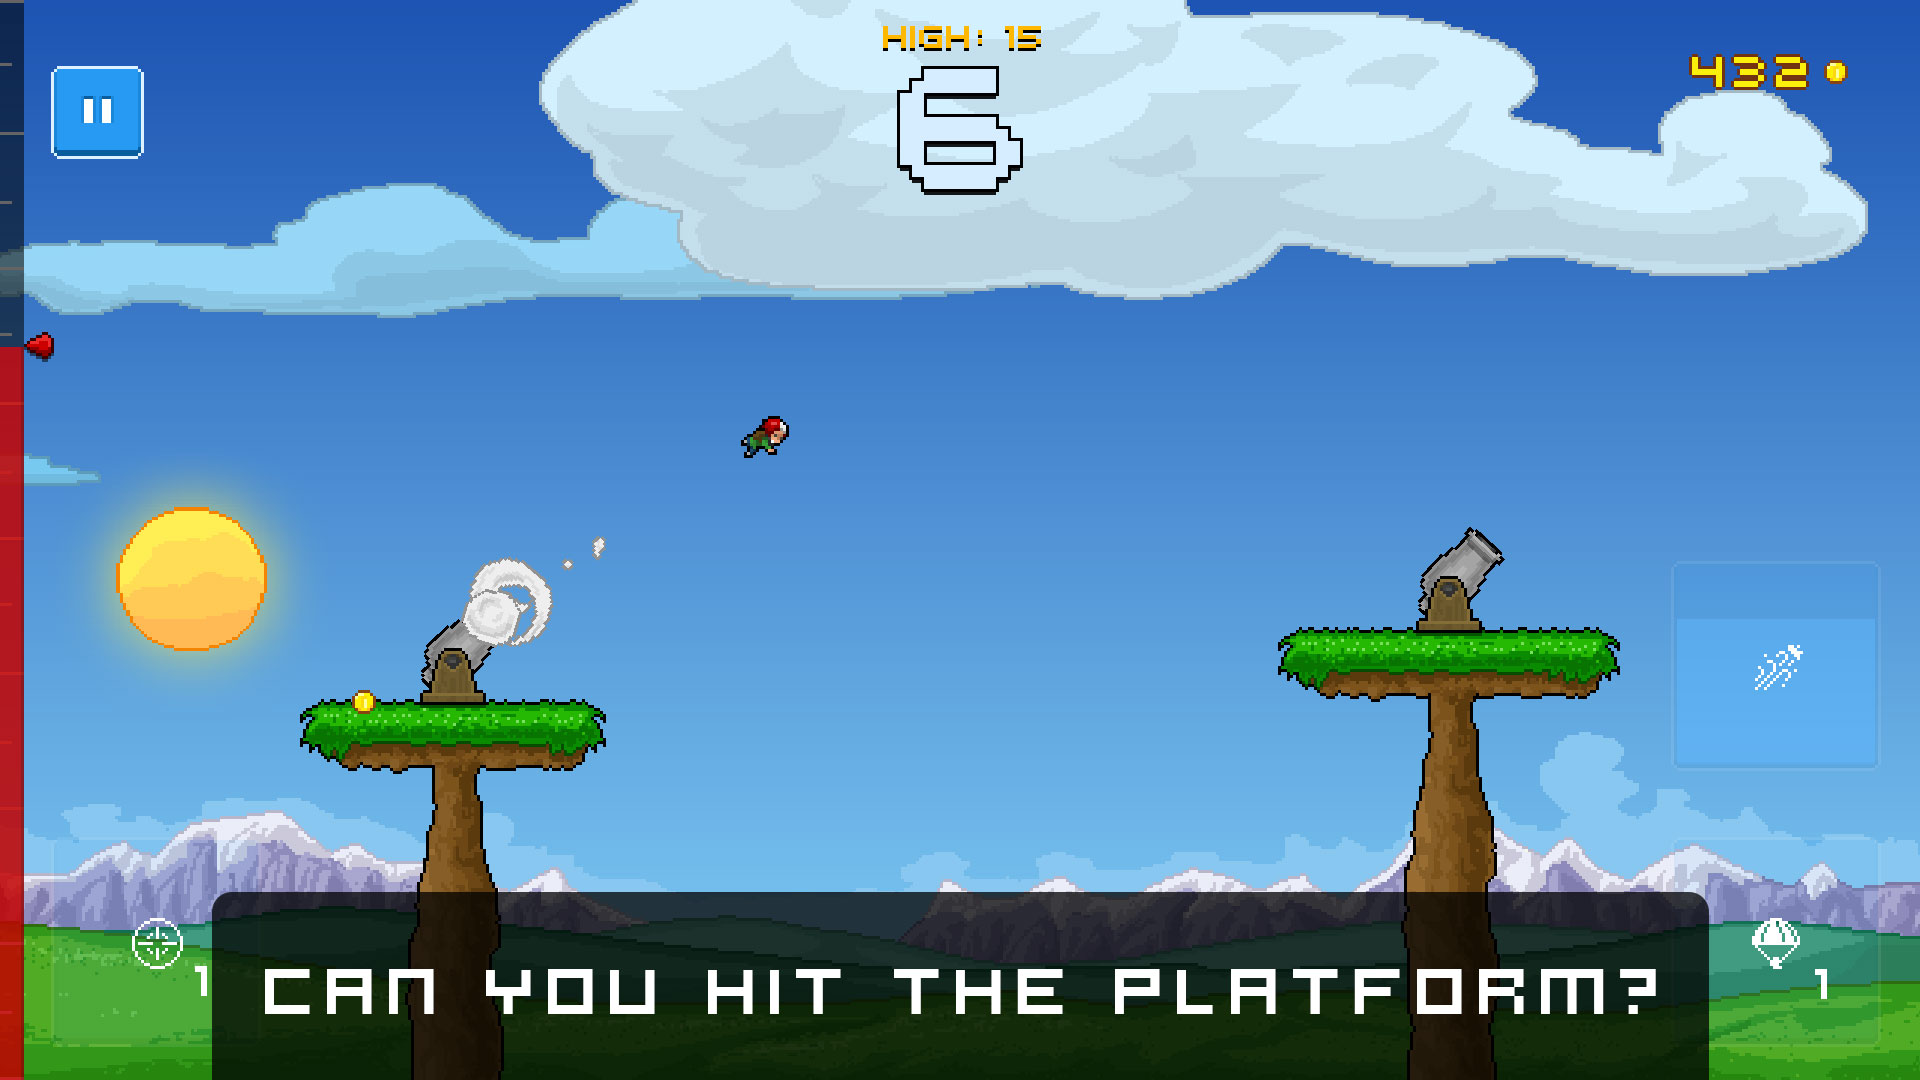 Human Cannonball - Can you hit the platform?